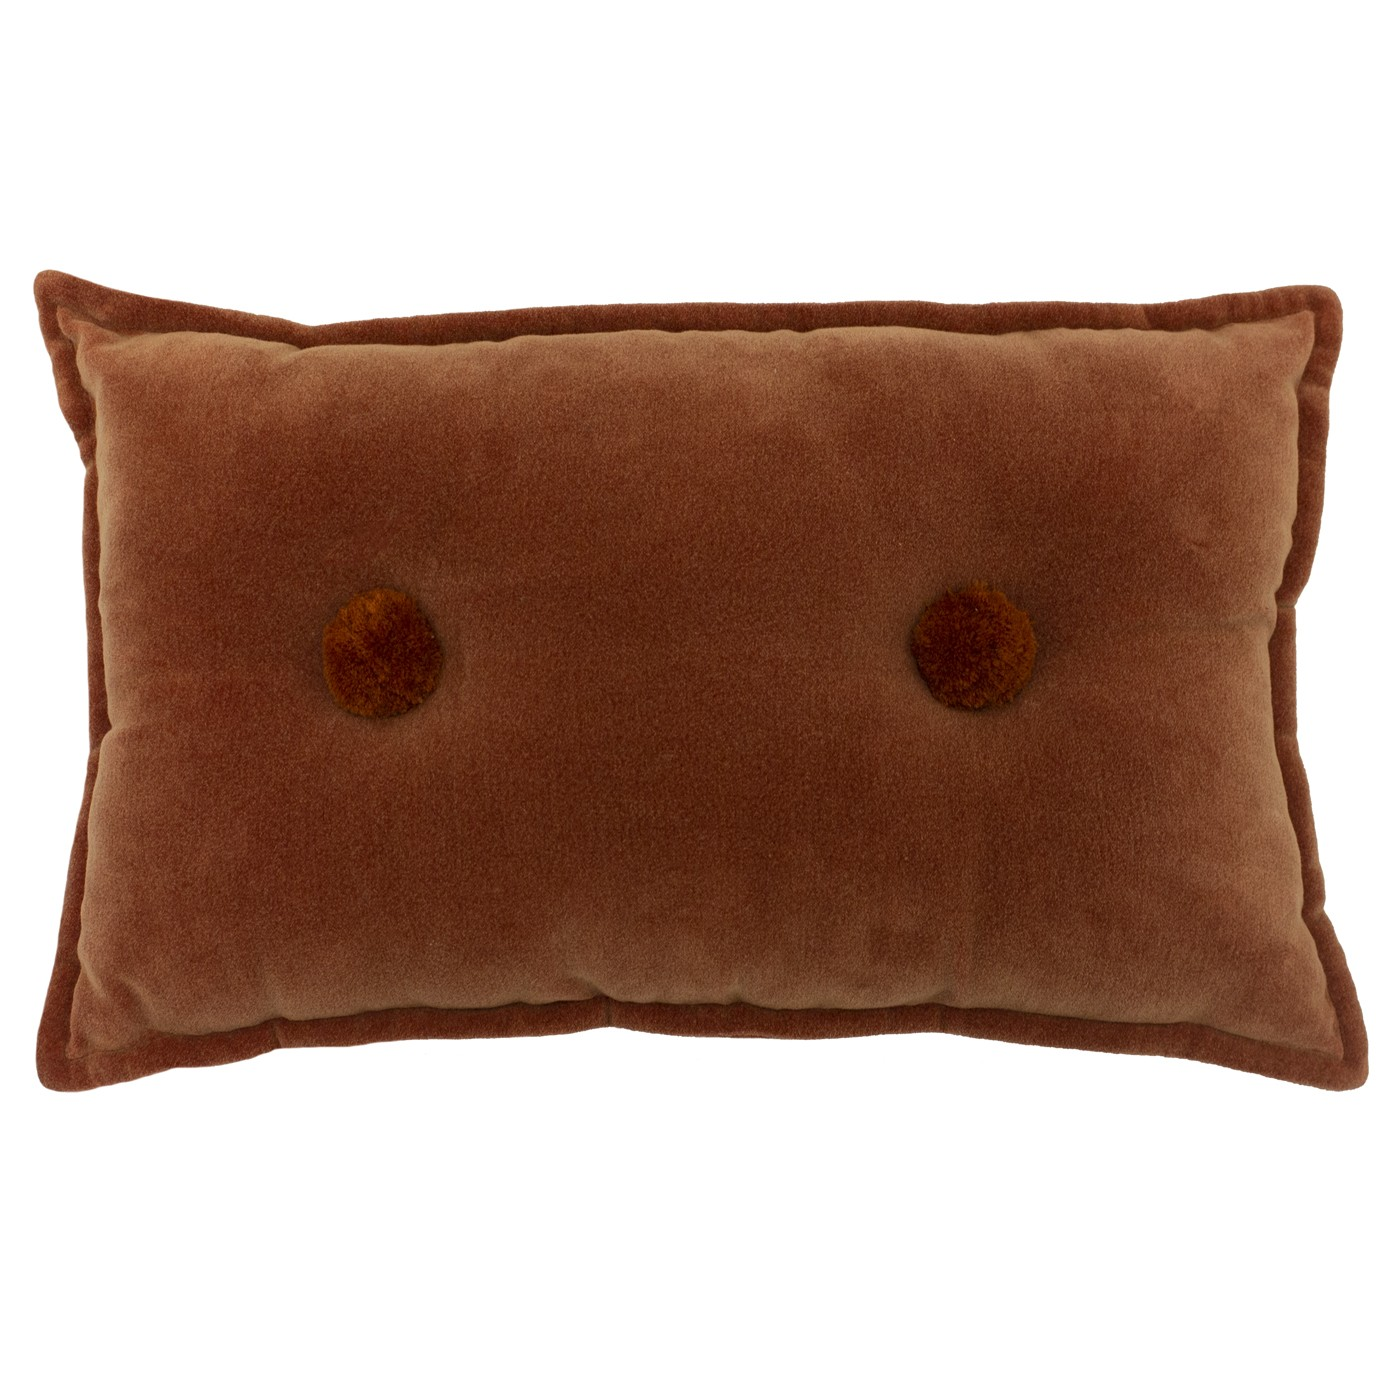 Bobble Cushion, Brick by furn.